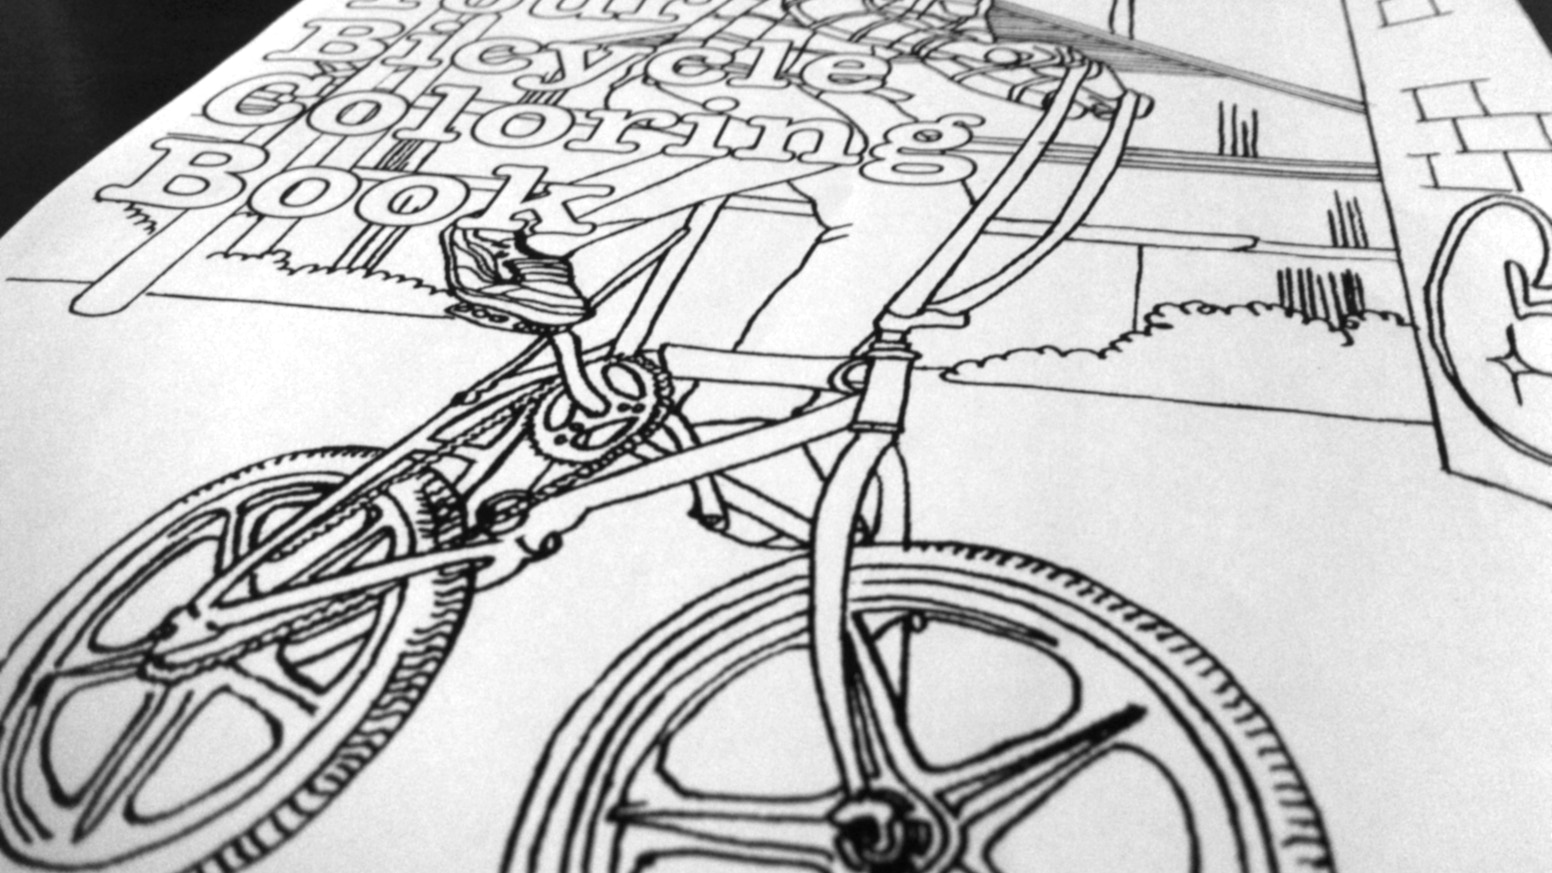 Coloring book html5 - A Bicycle Coloring Book With Pictures Of Real Riders Including You